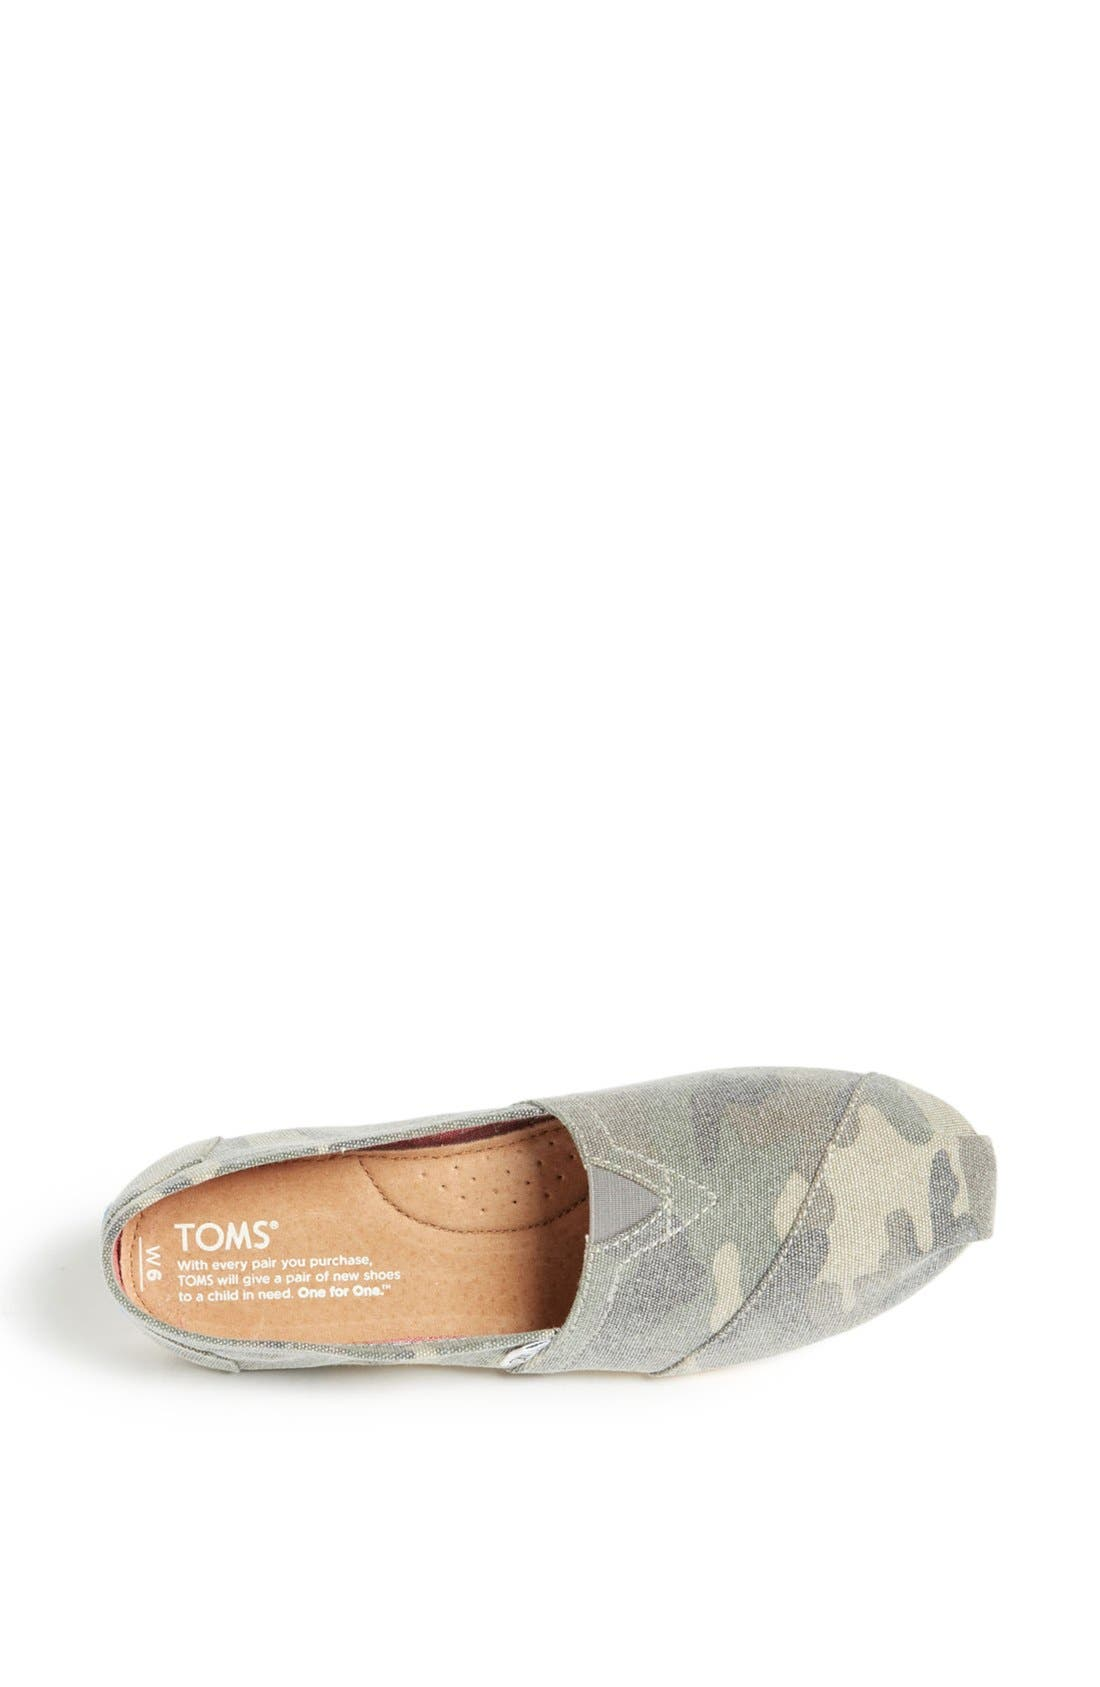 Alternate Image 3  - TOMS 'Classic - Camo' Canvas Slip-On (Women)